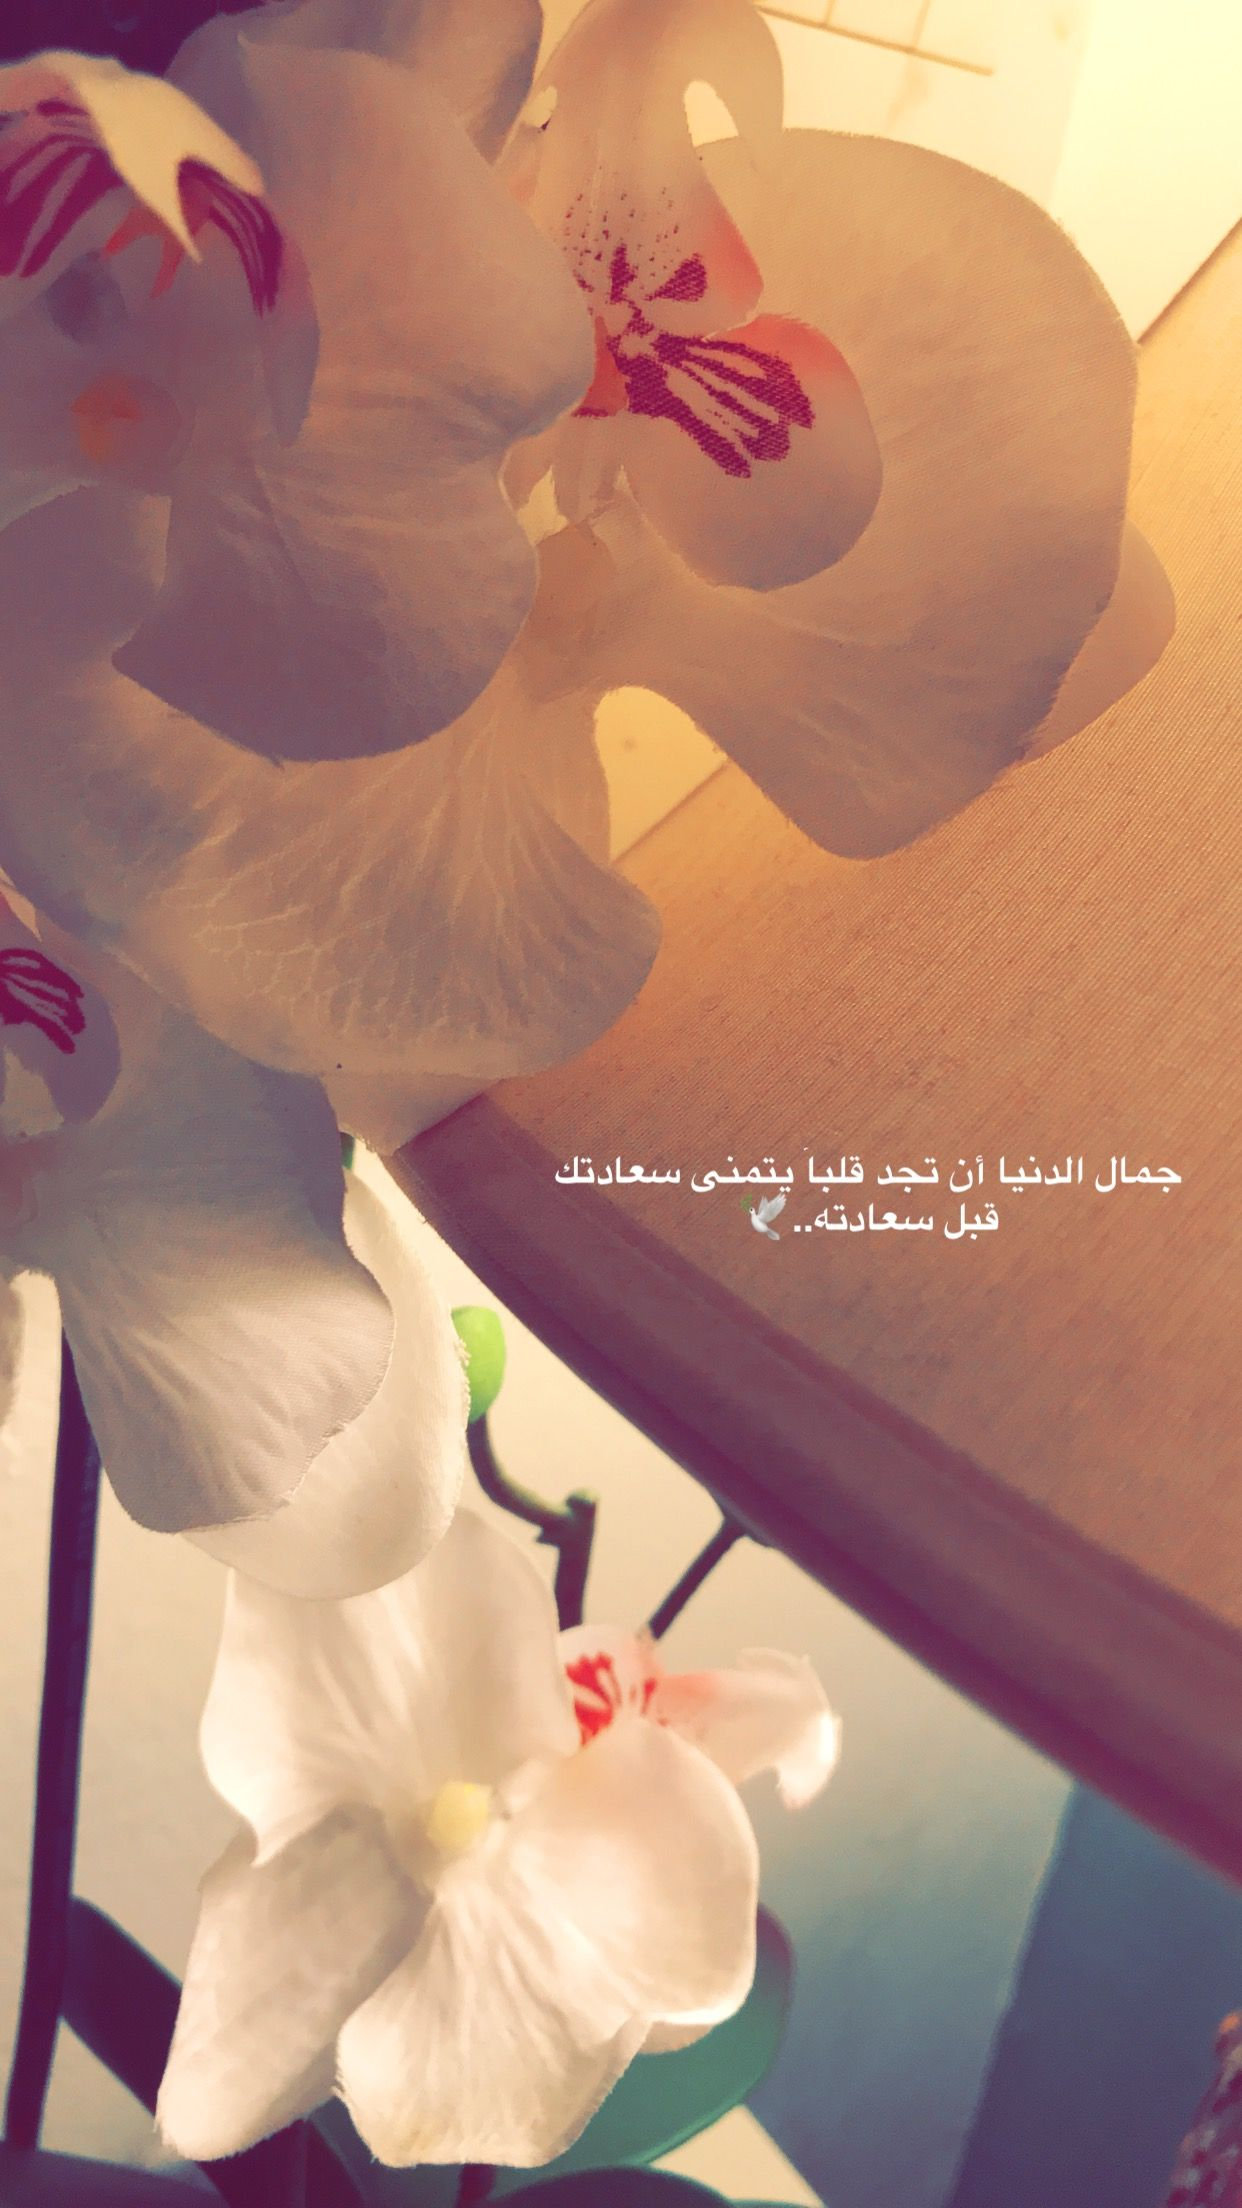 Pin By Salha Sy On My Photos Beautiful Arabic Words Girl Shadow Mixed Feelings Quotes